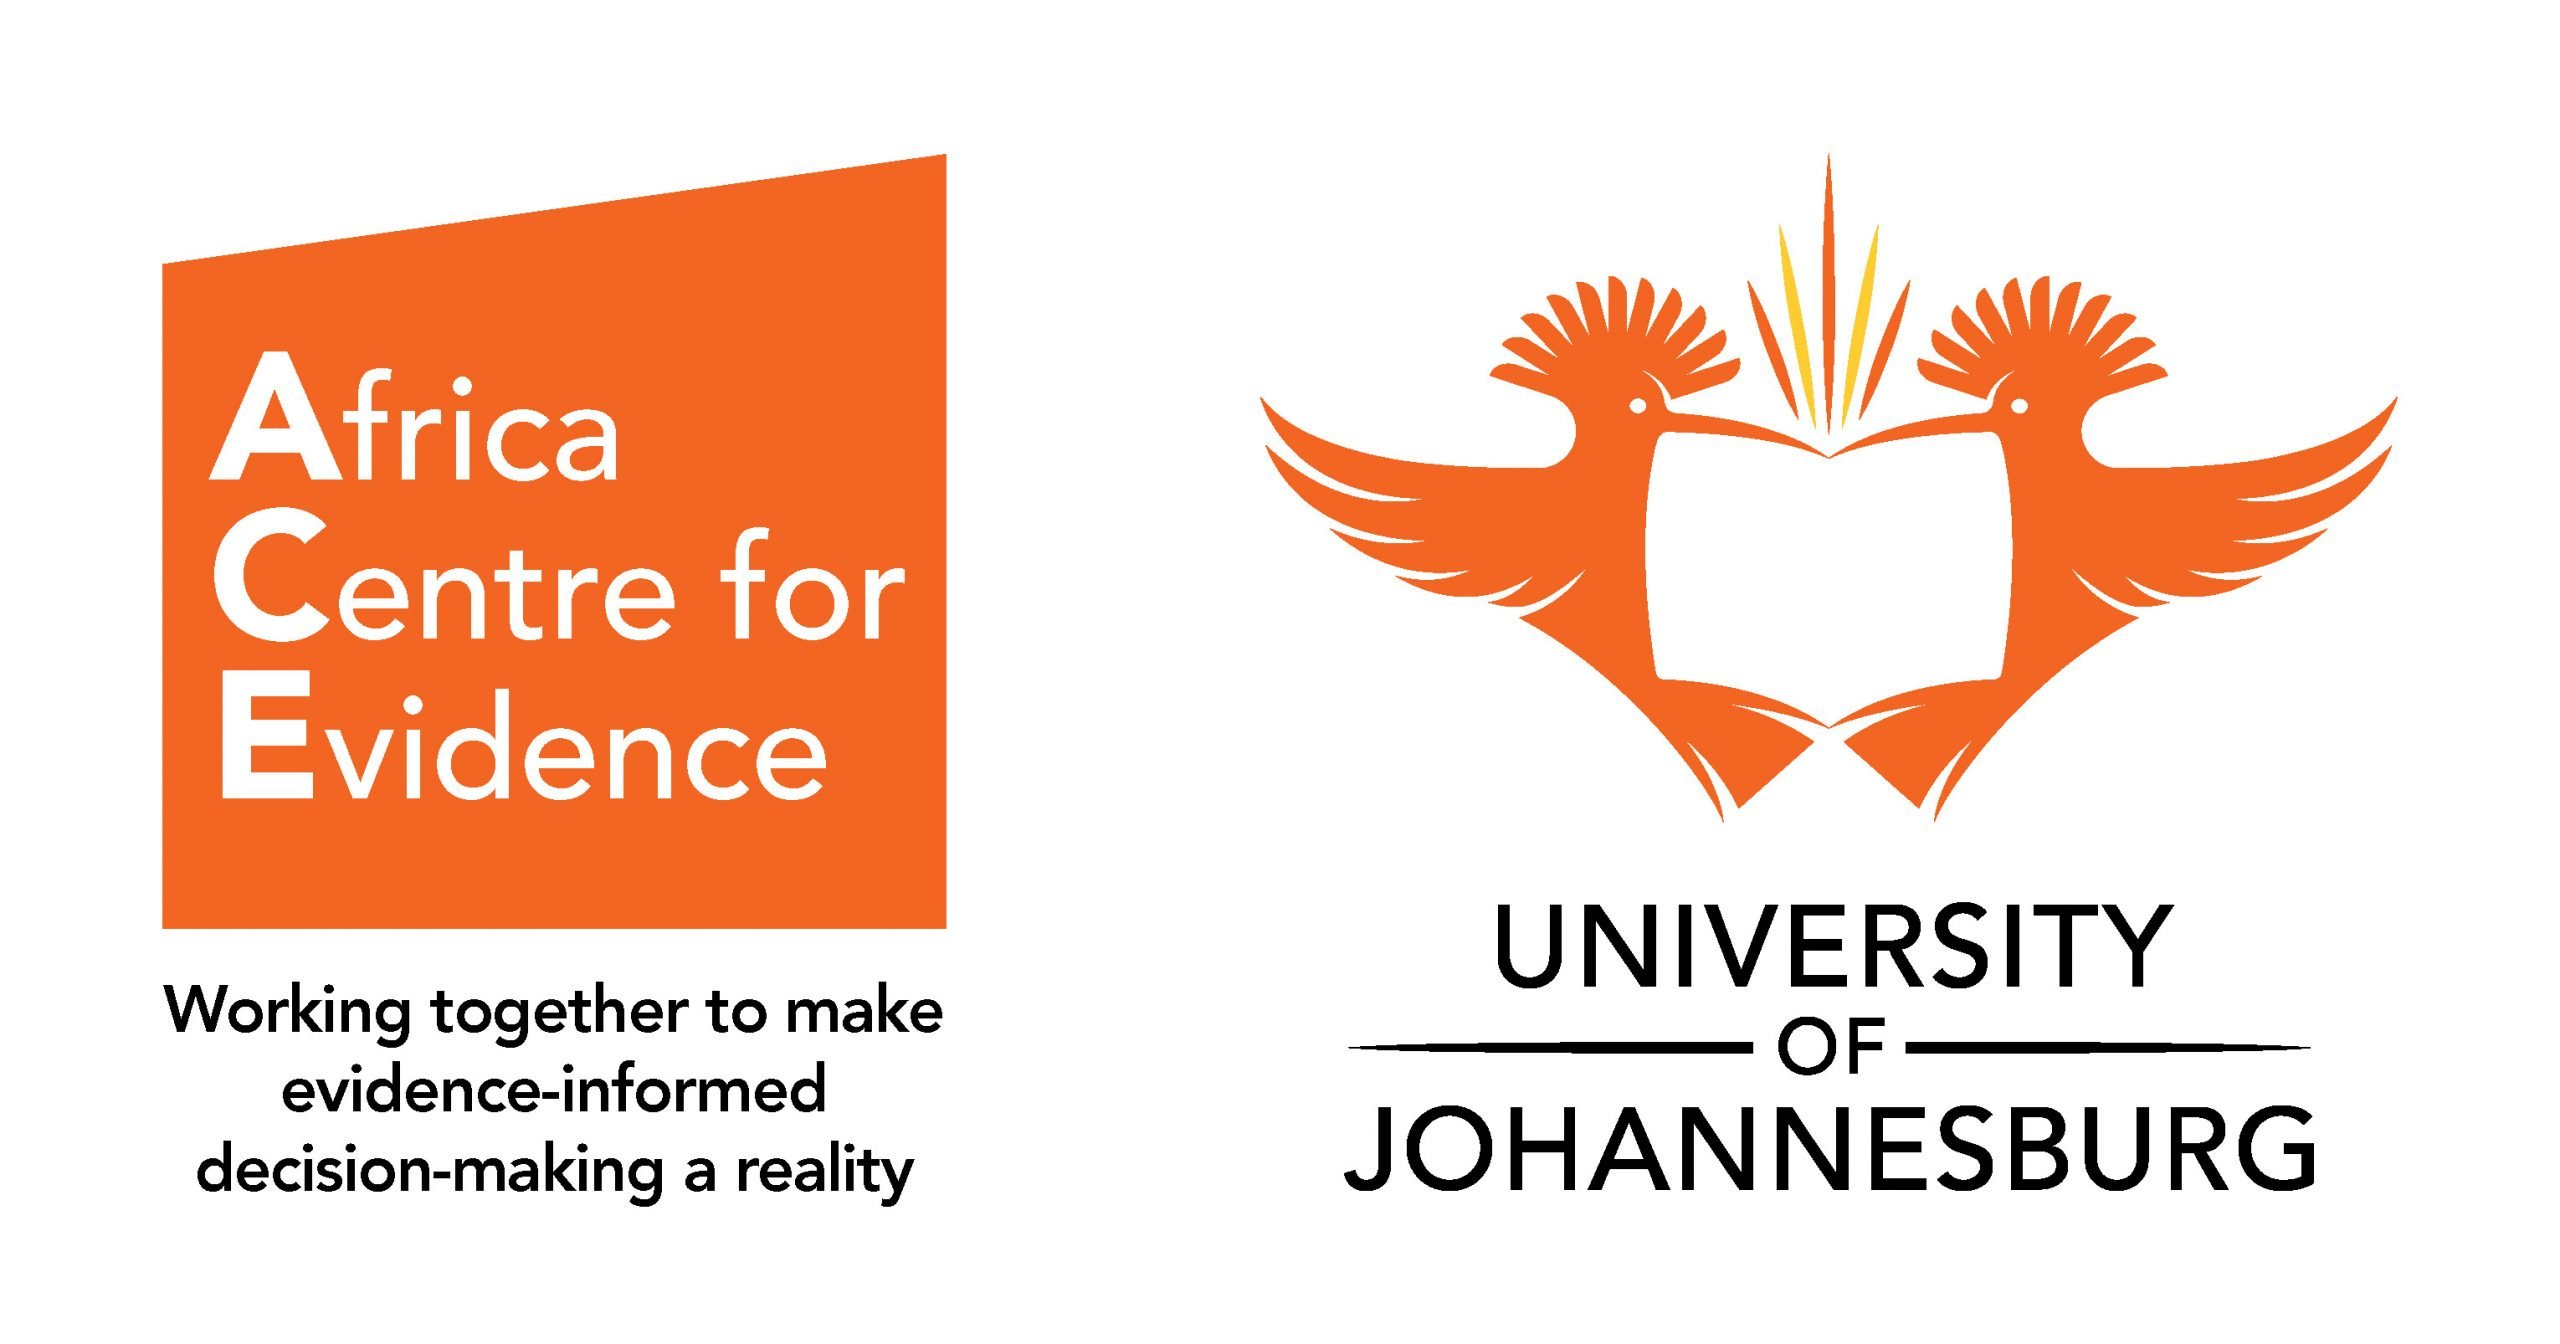 Africa Centre for Evidence Logo with Slogan